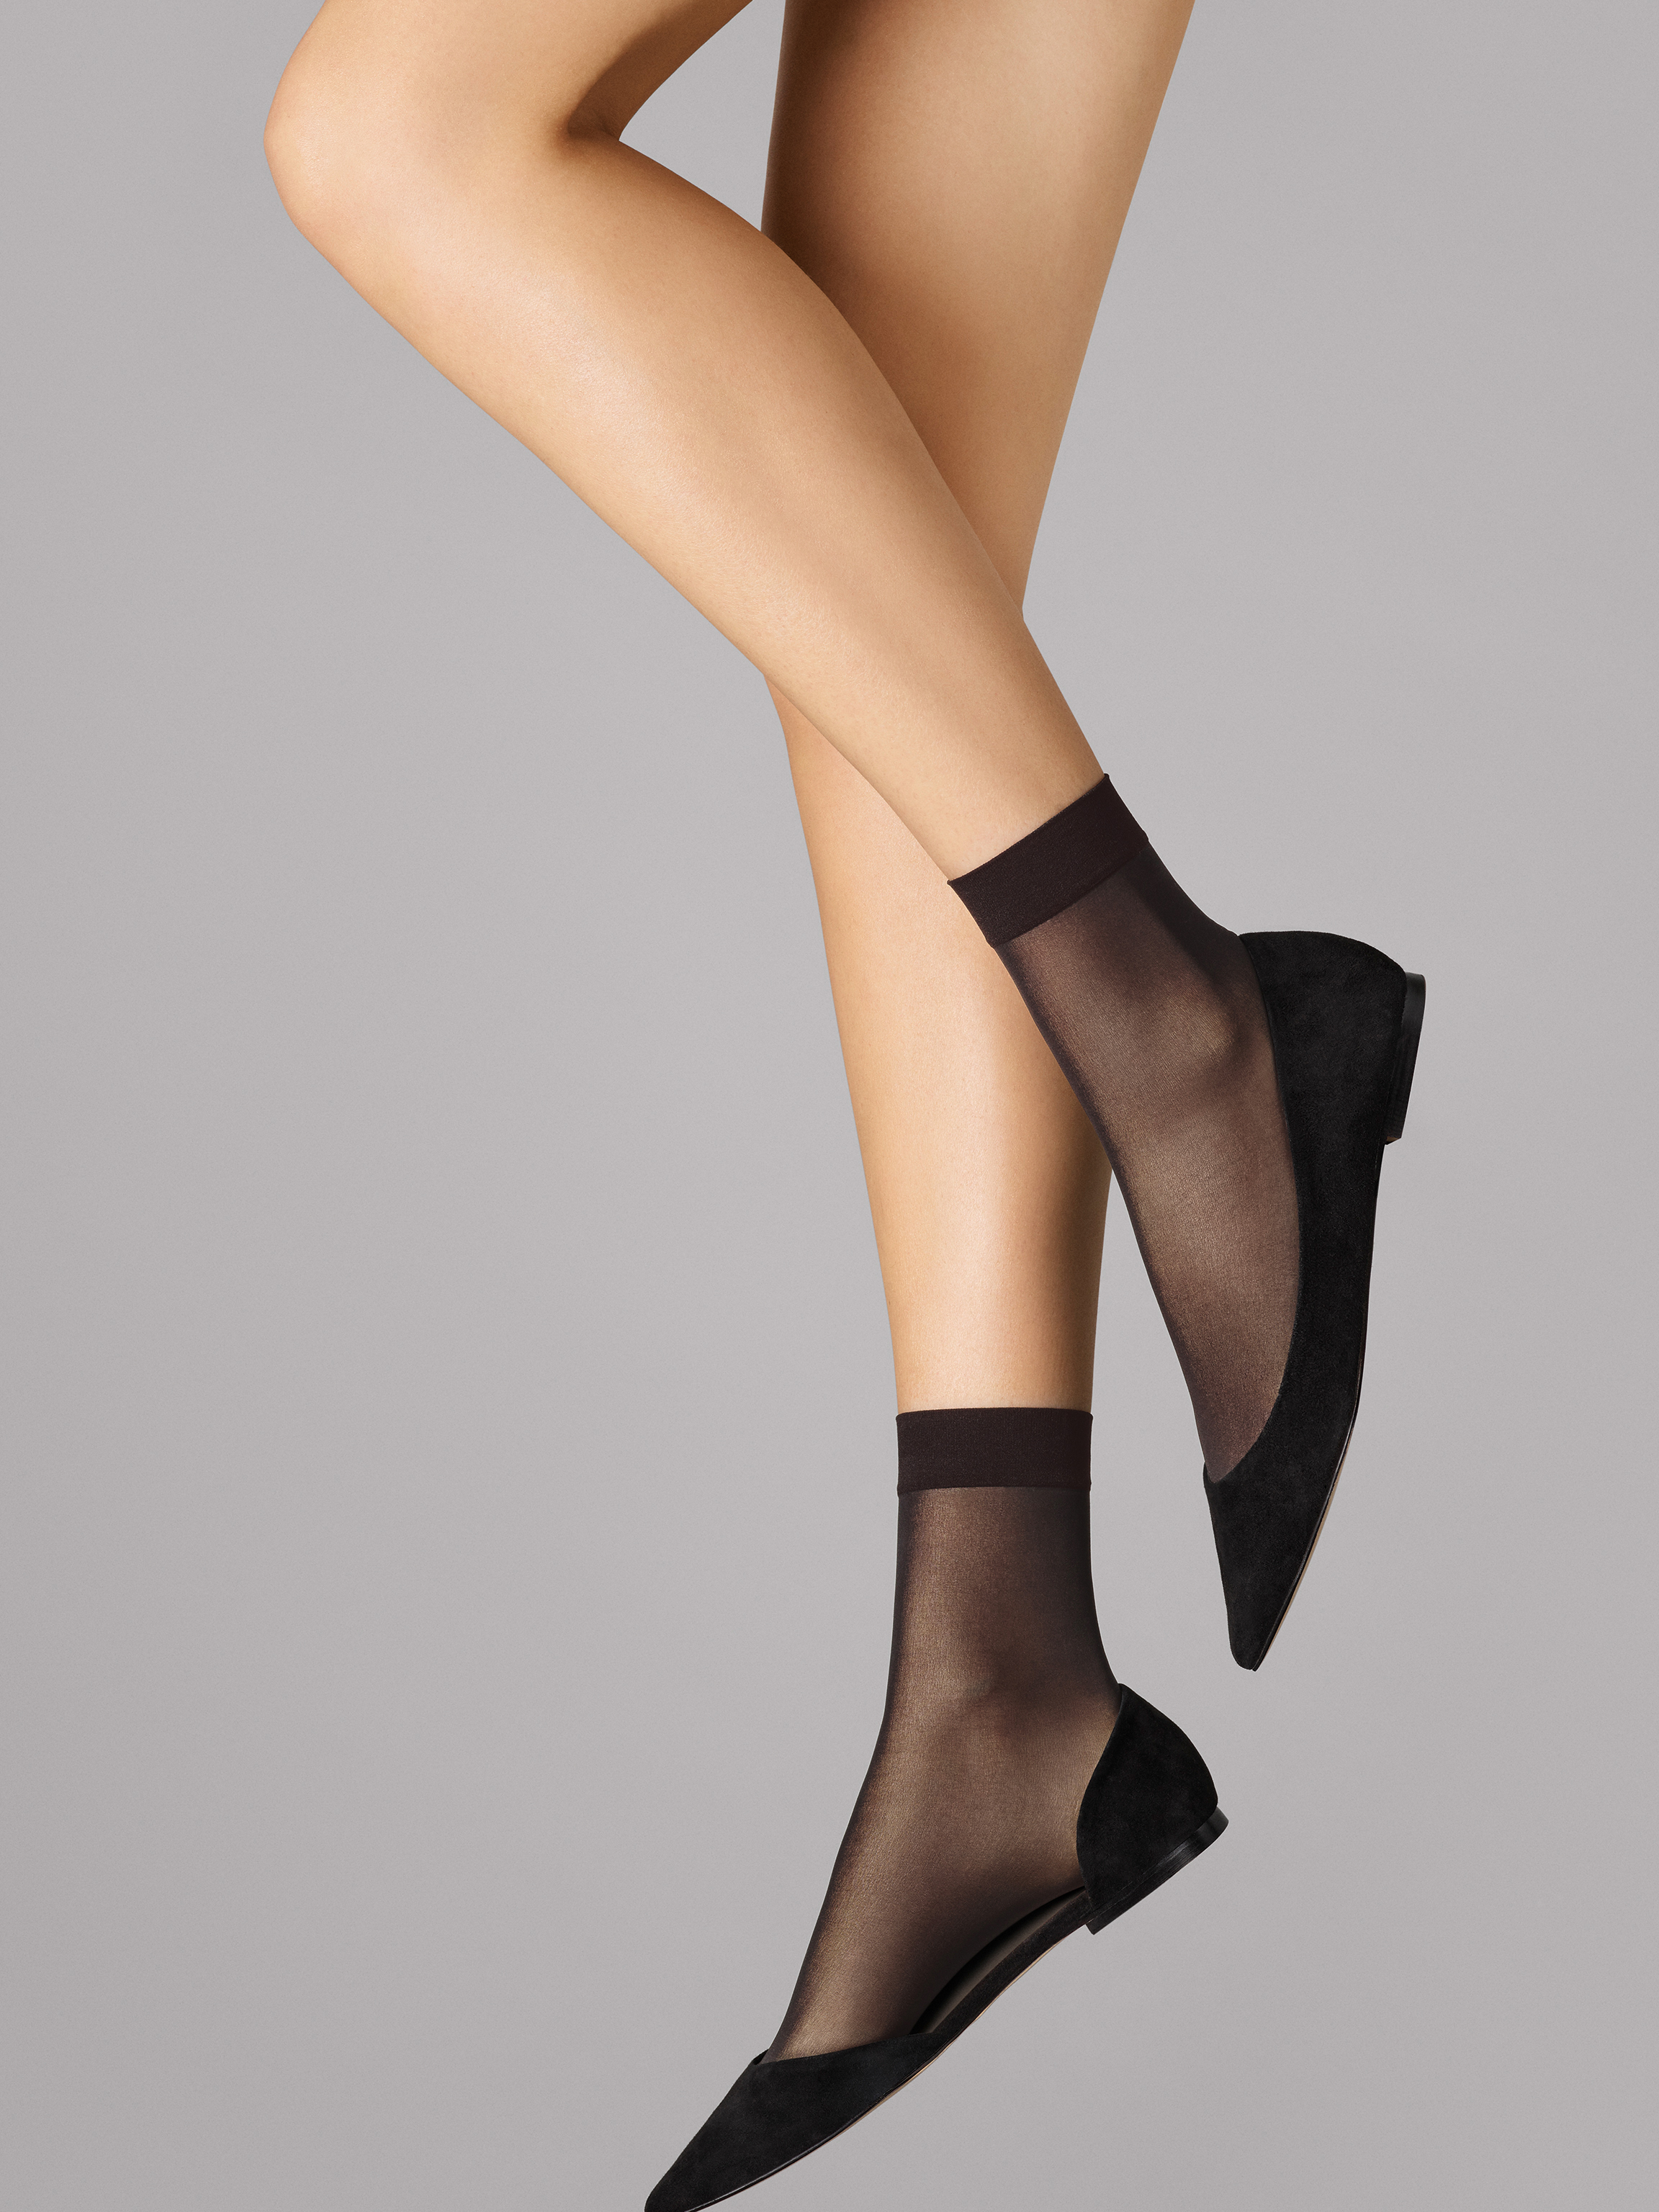 Wolford Apparel & Accessories > Clothing > Calzini Individual 10 Socks - 7212 - S